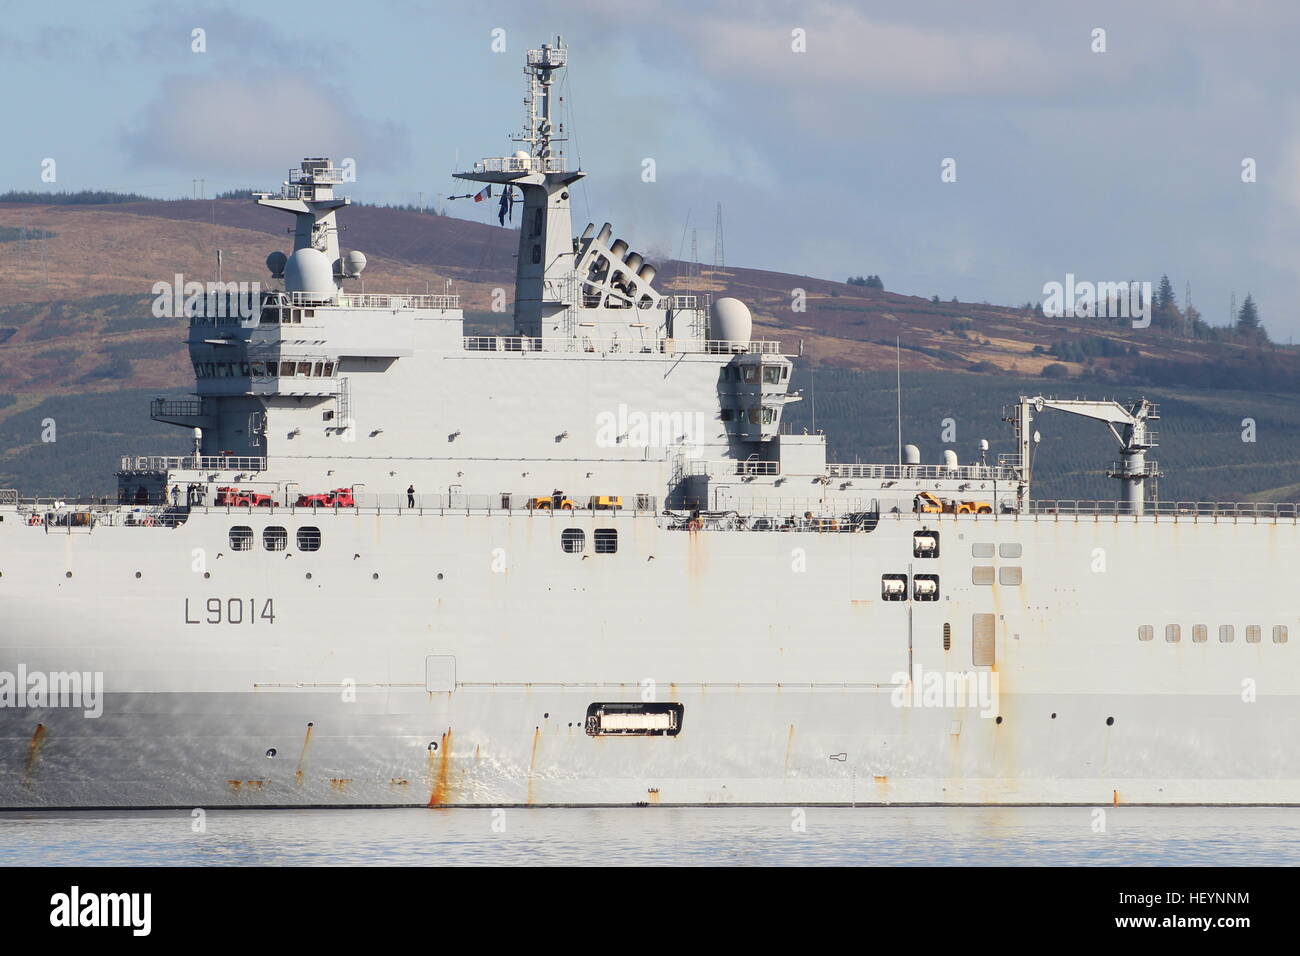 fs tonnerre l9014 a mistral class assault ship of the french navy